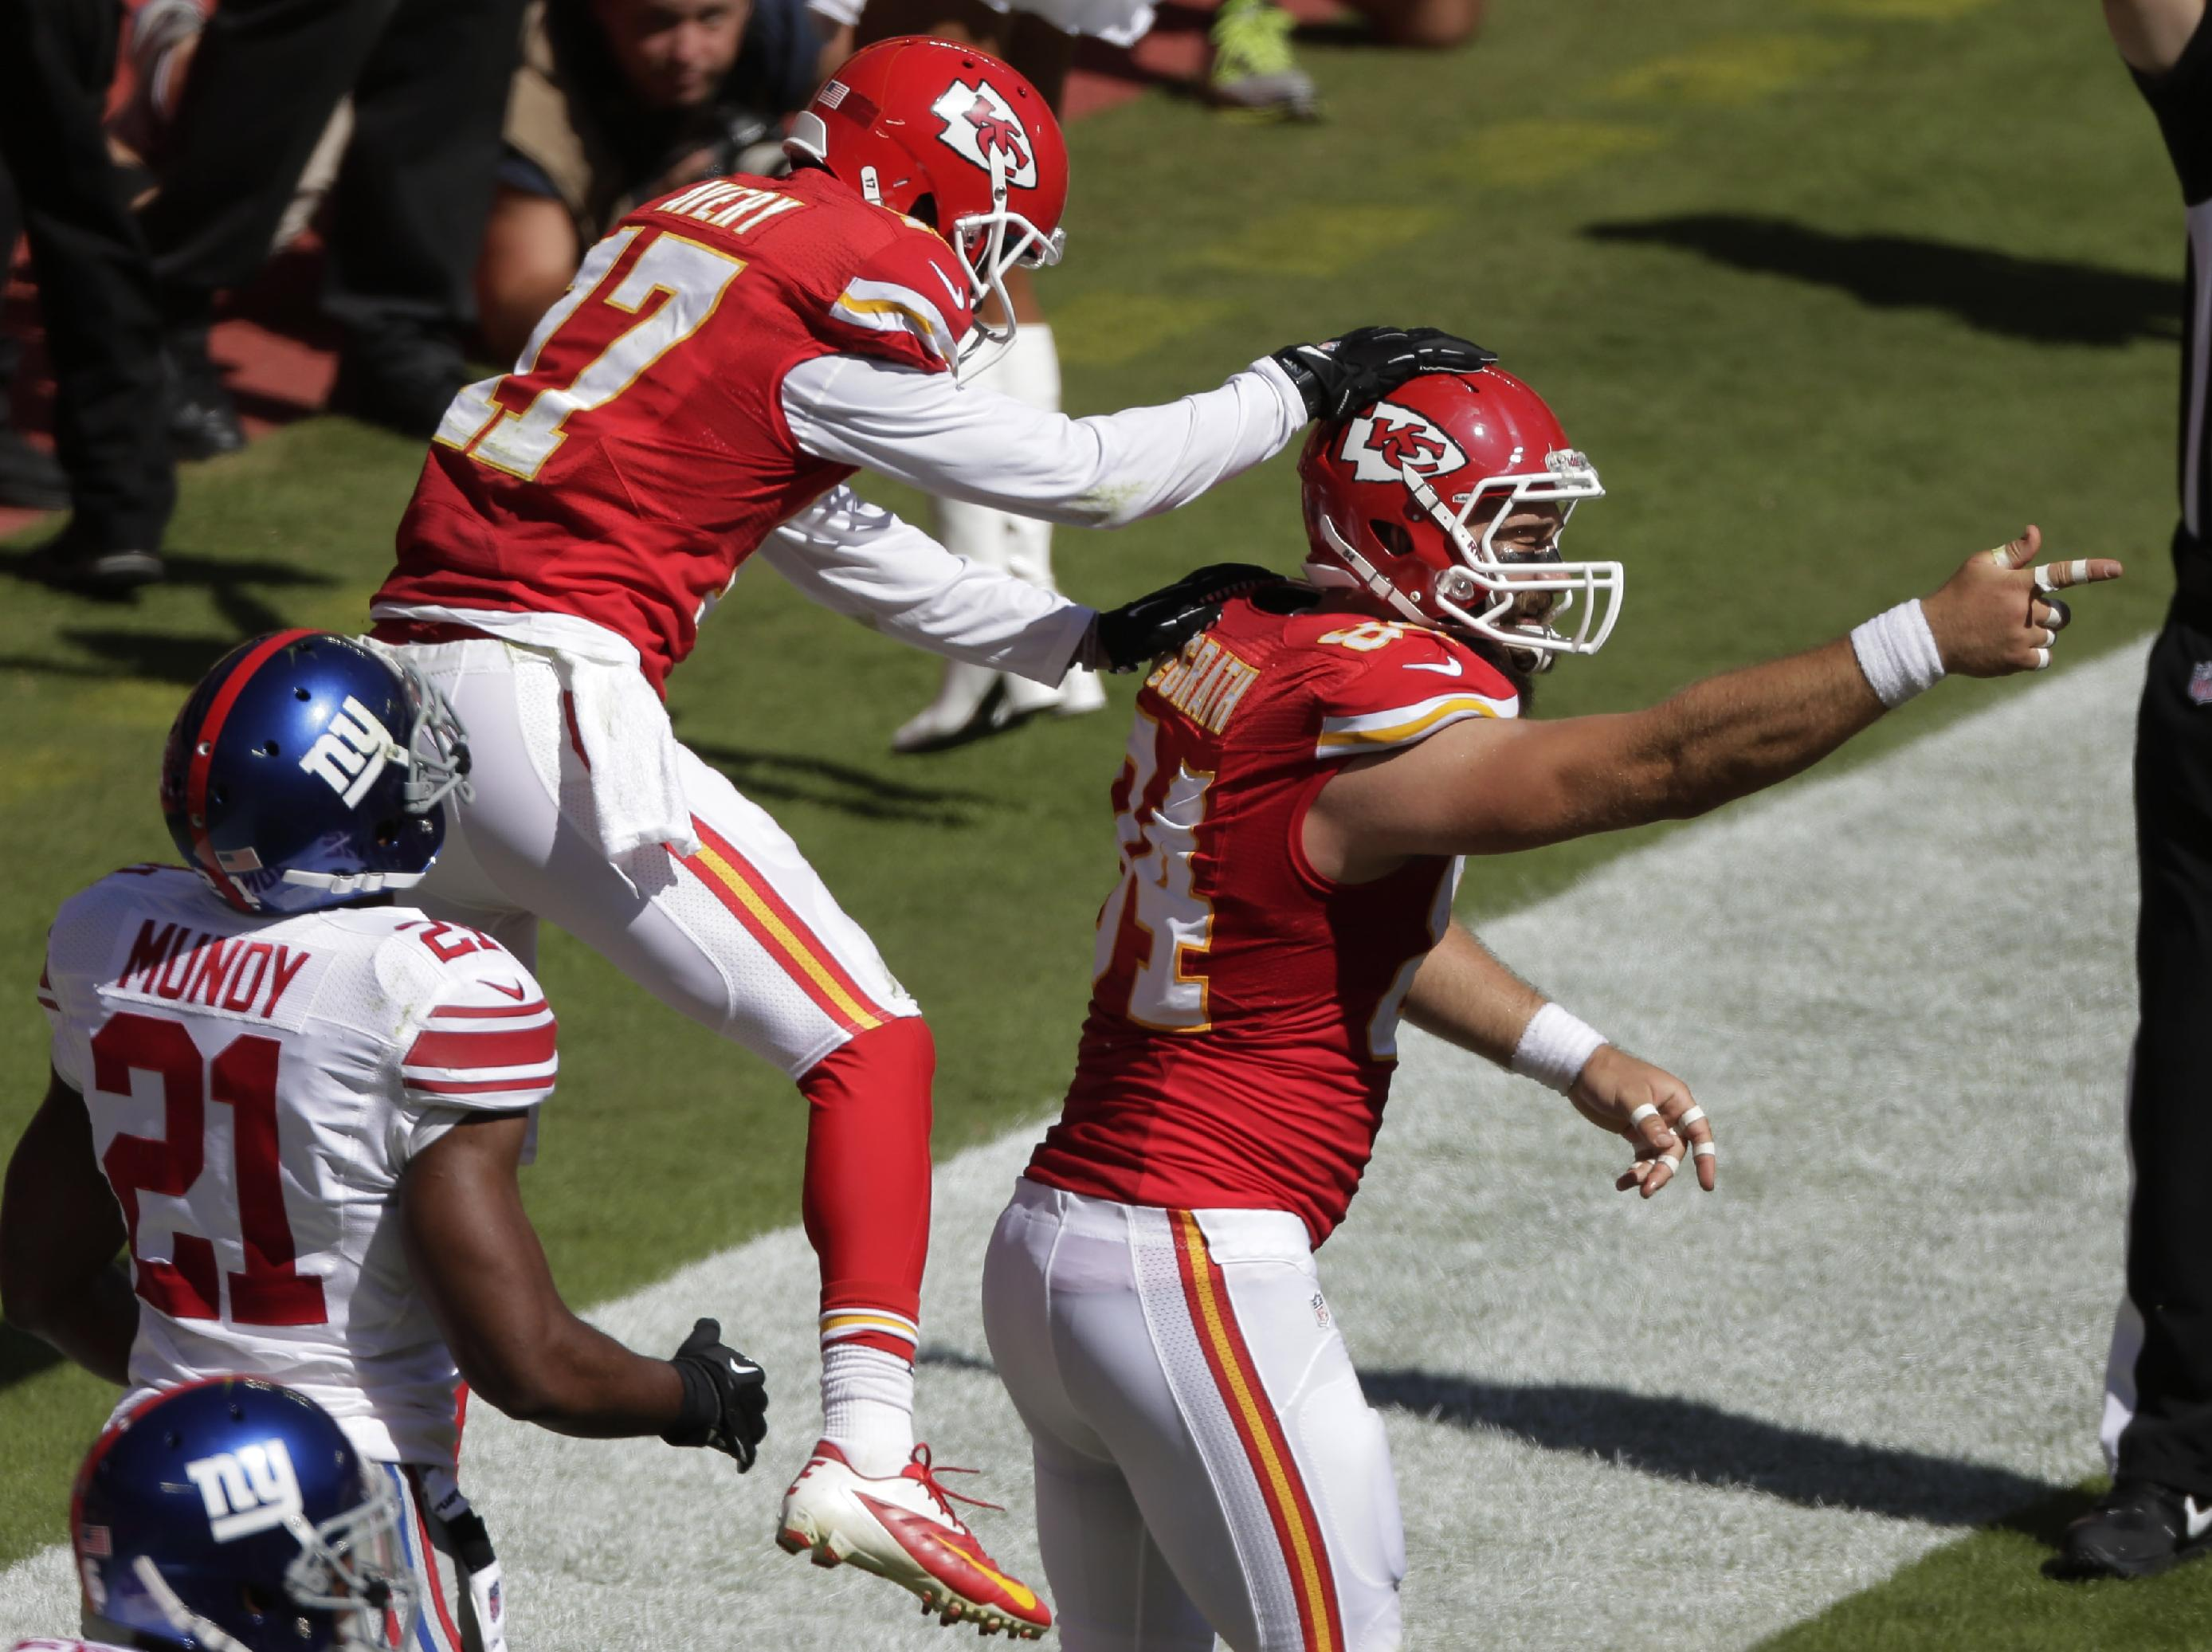 Kansas City Chiefs tight end Sean McGrath (84) celebrates a touchdown with wide receiver Donnie Avery (17) during the first half of an NFL football game against the New York Giants at Arrowhead Stadium in Kansas City, Mo., Sunday, Sept. 29, 2013. Giants free safety Ryan Mundy (21) watches the celebration